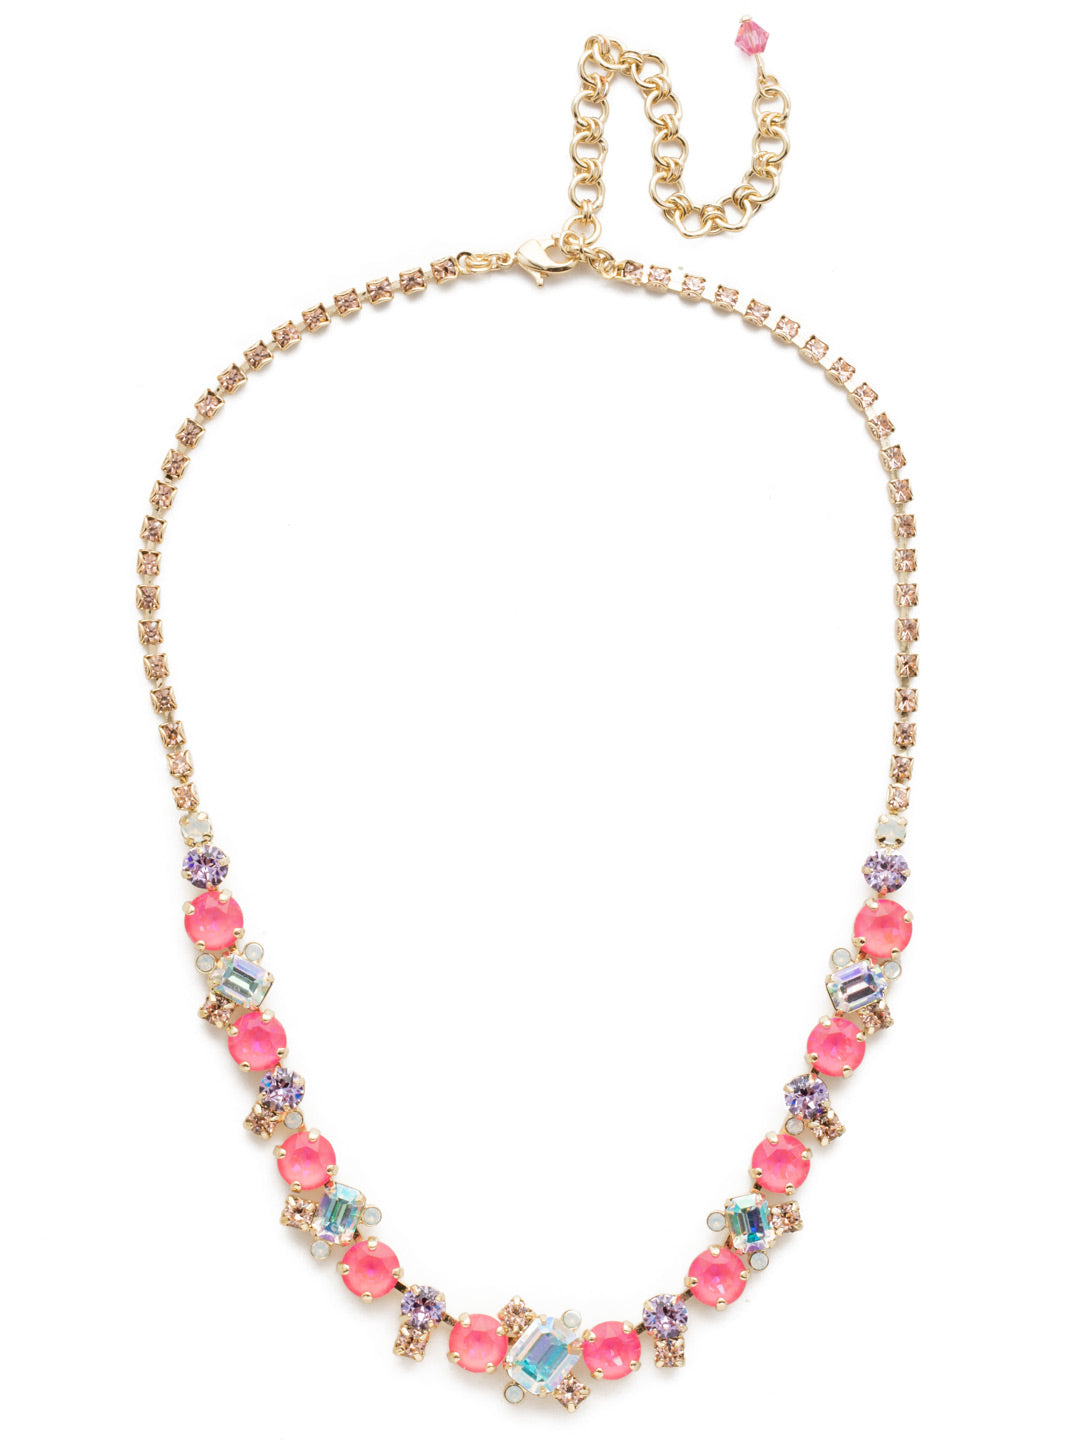 Sophisticated Tennis Necklace - NDK17BGISS